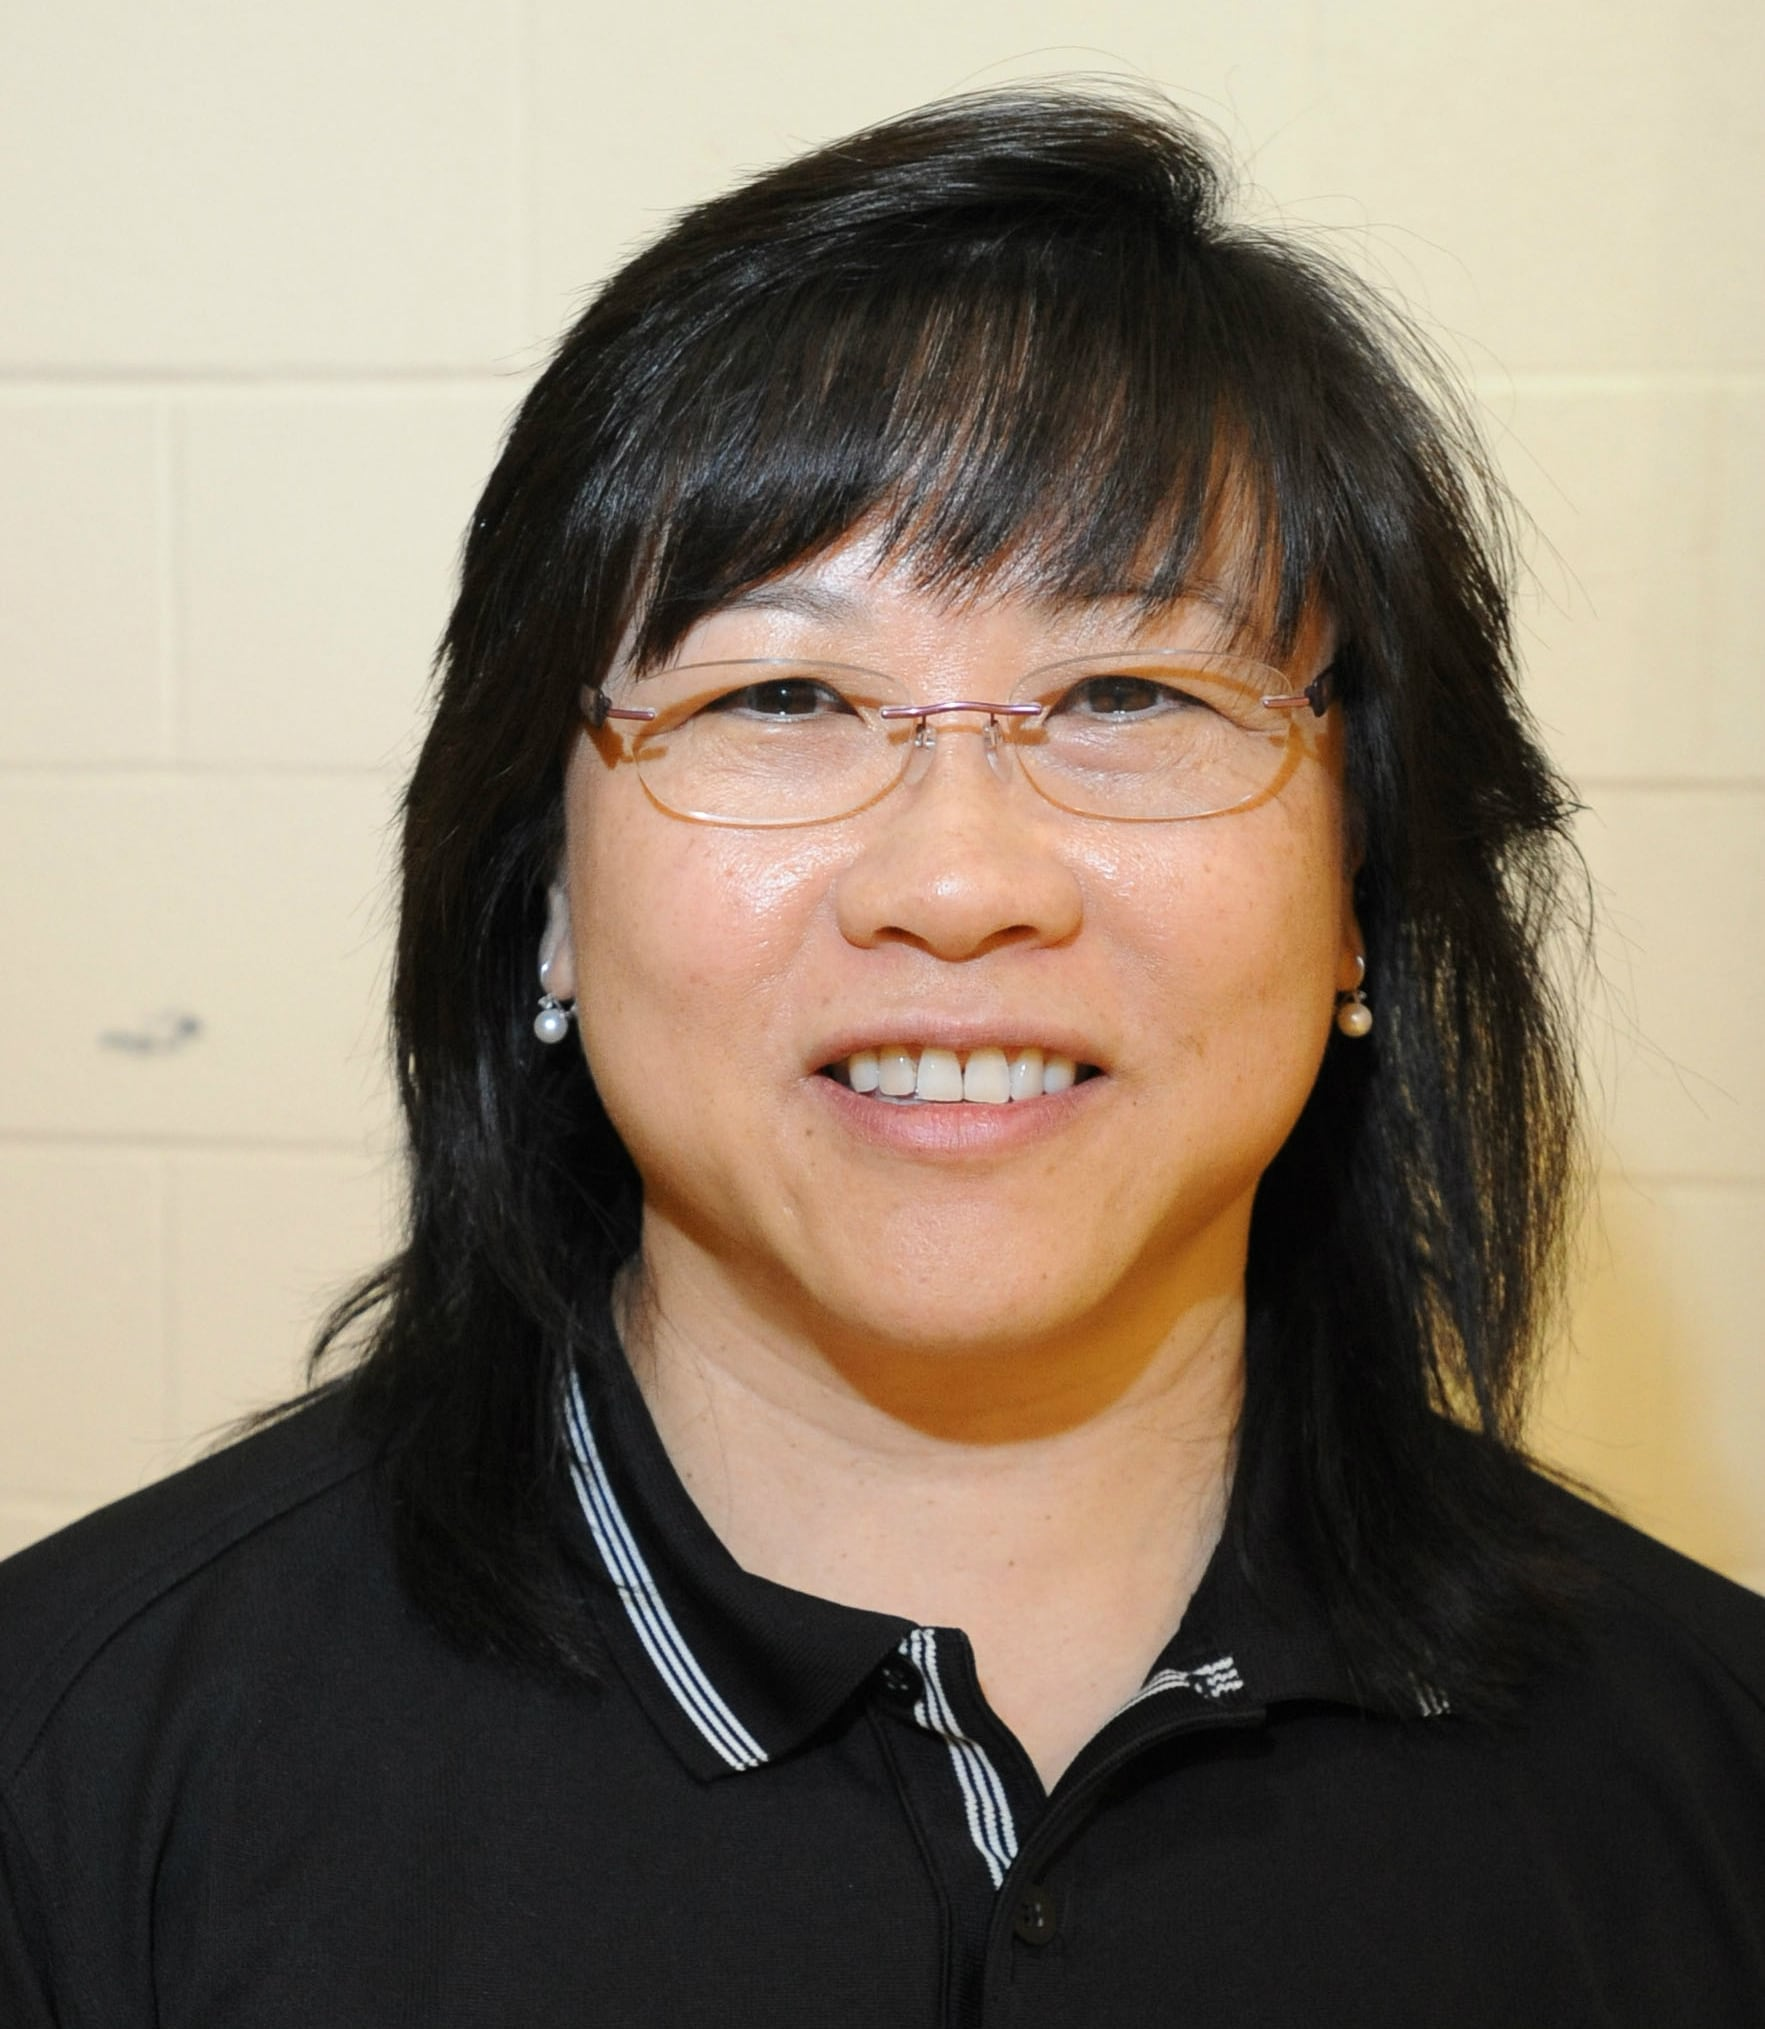 Director of Sports Performance Judy Seto